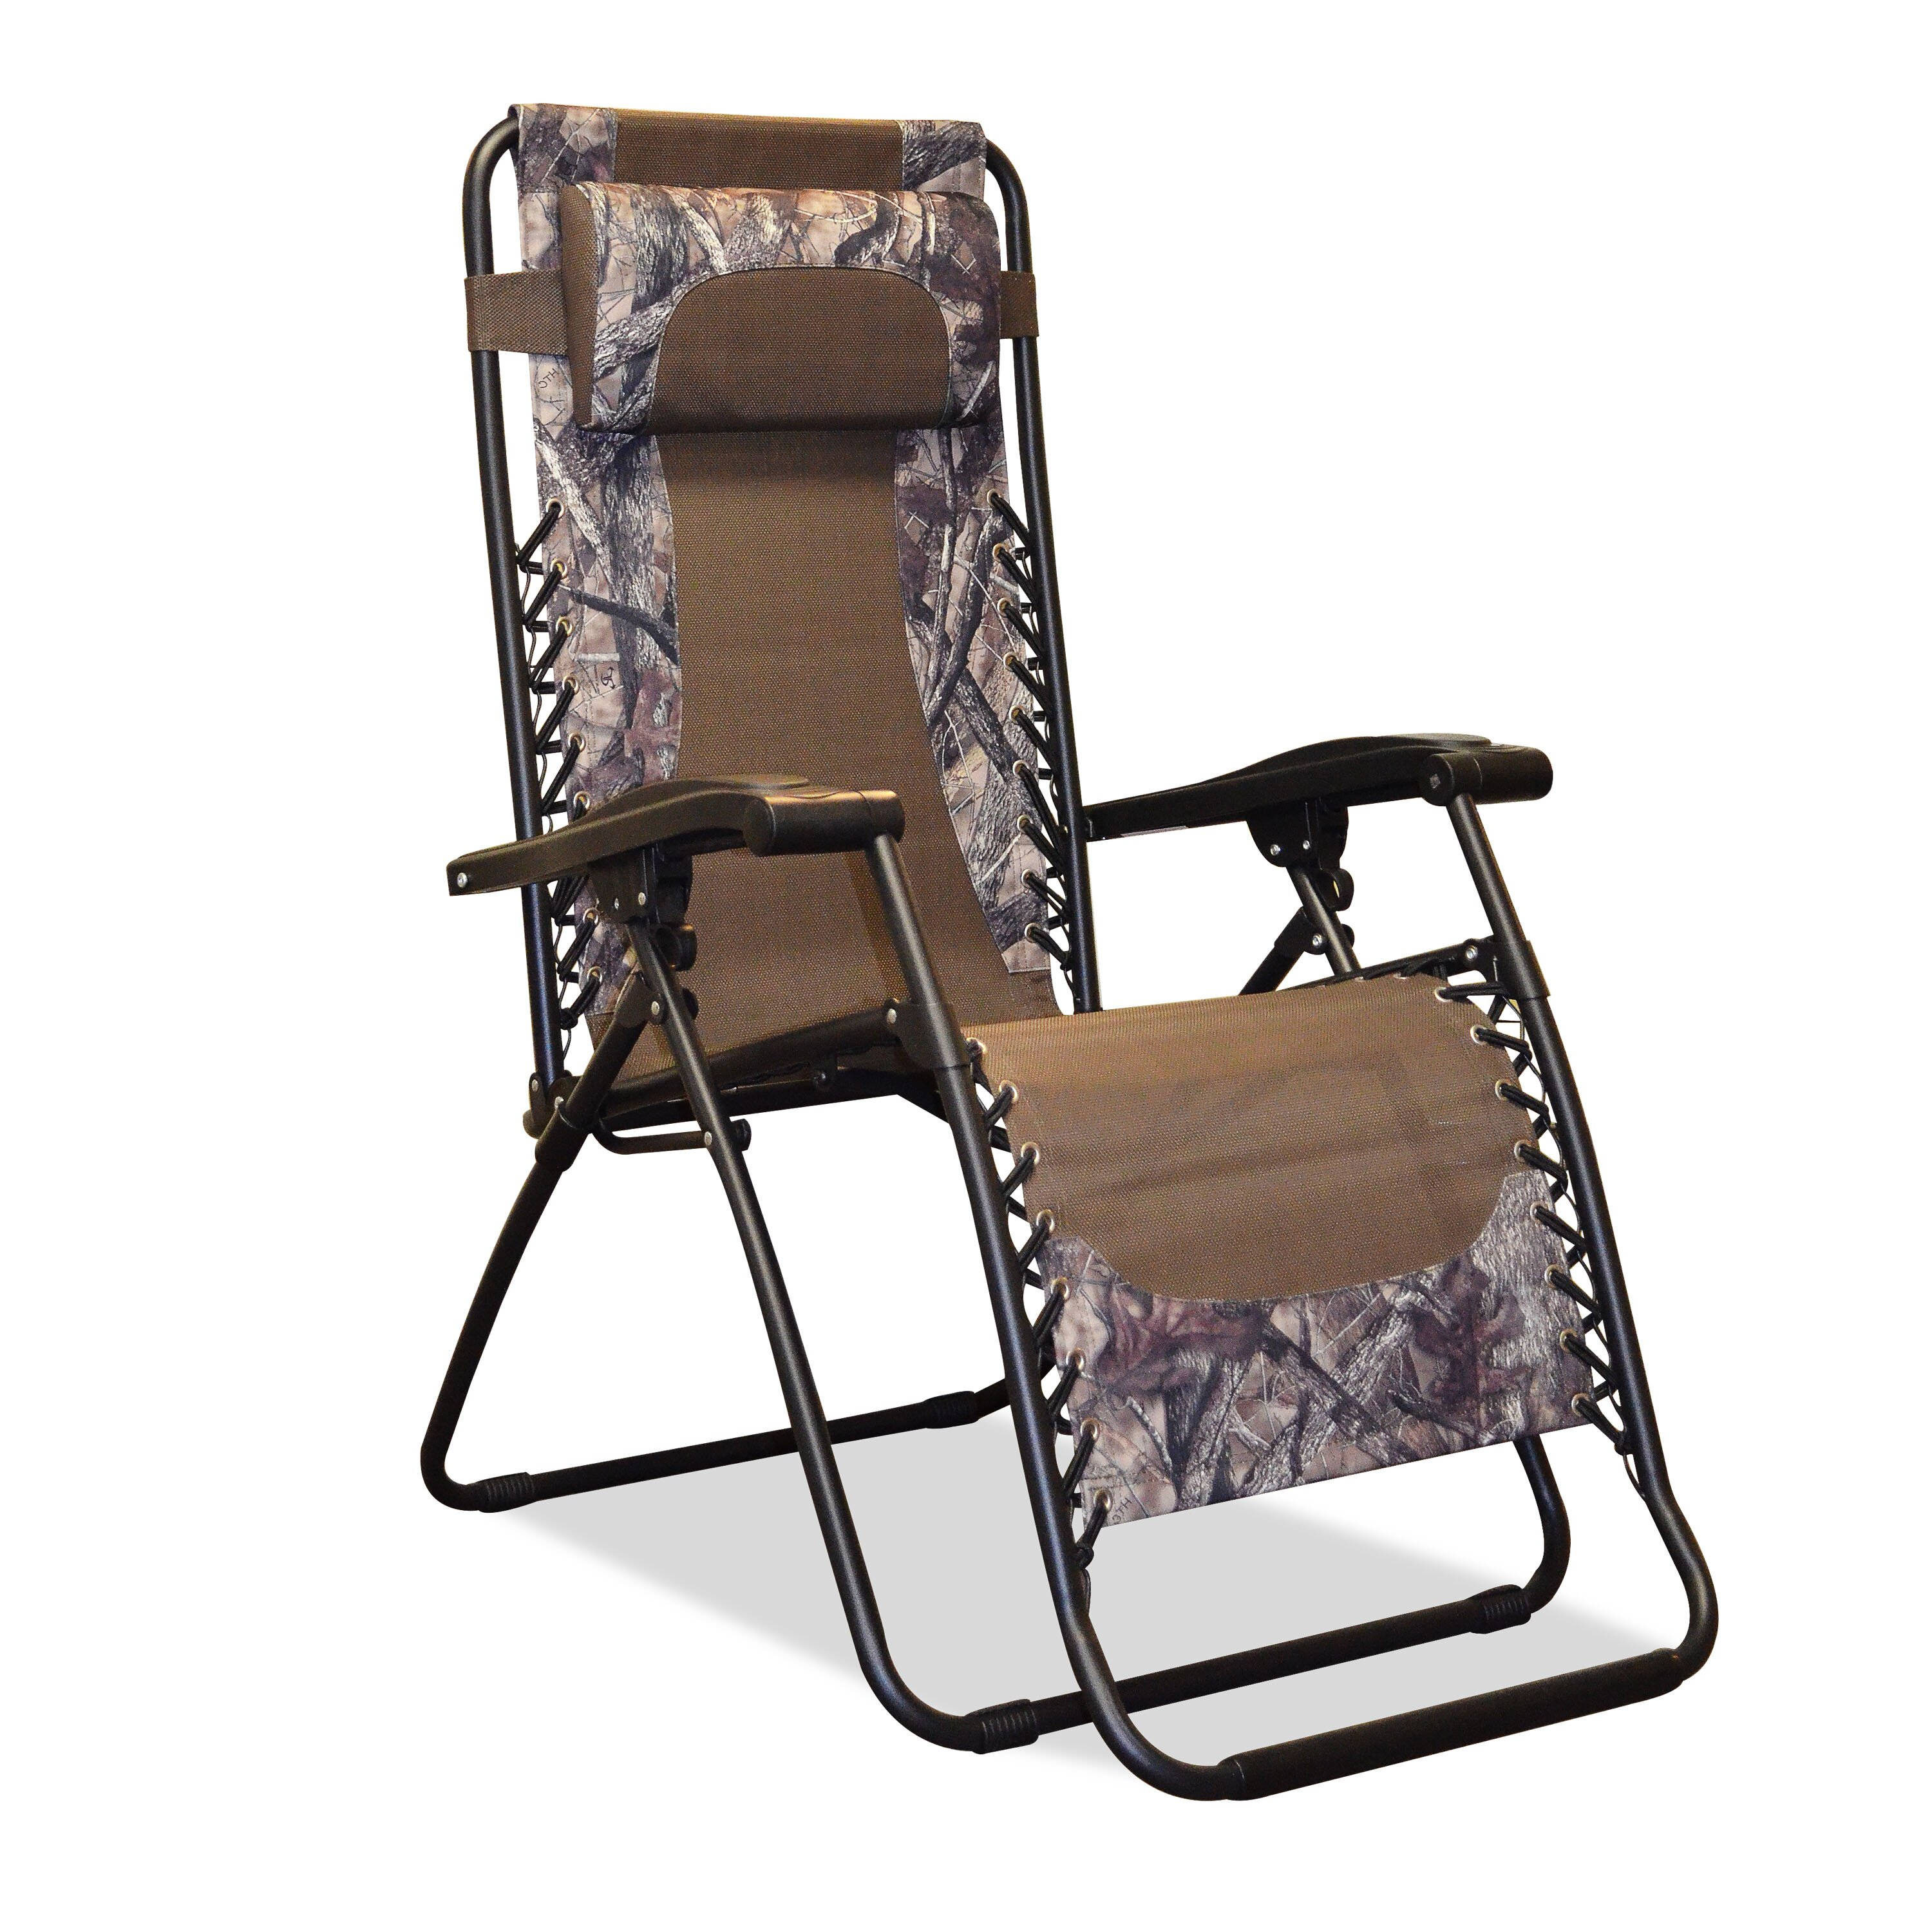 CaravanCanopy Sports Infinity Zero Gravity Chair & Reviews